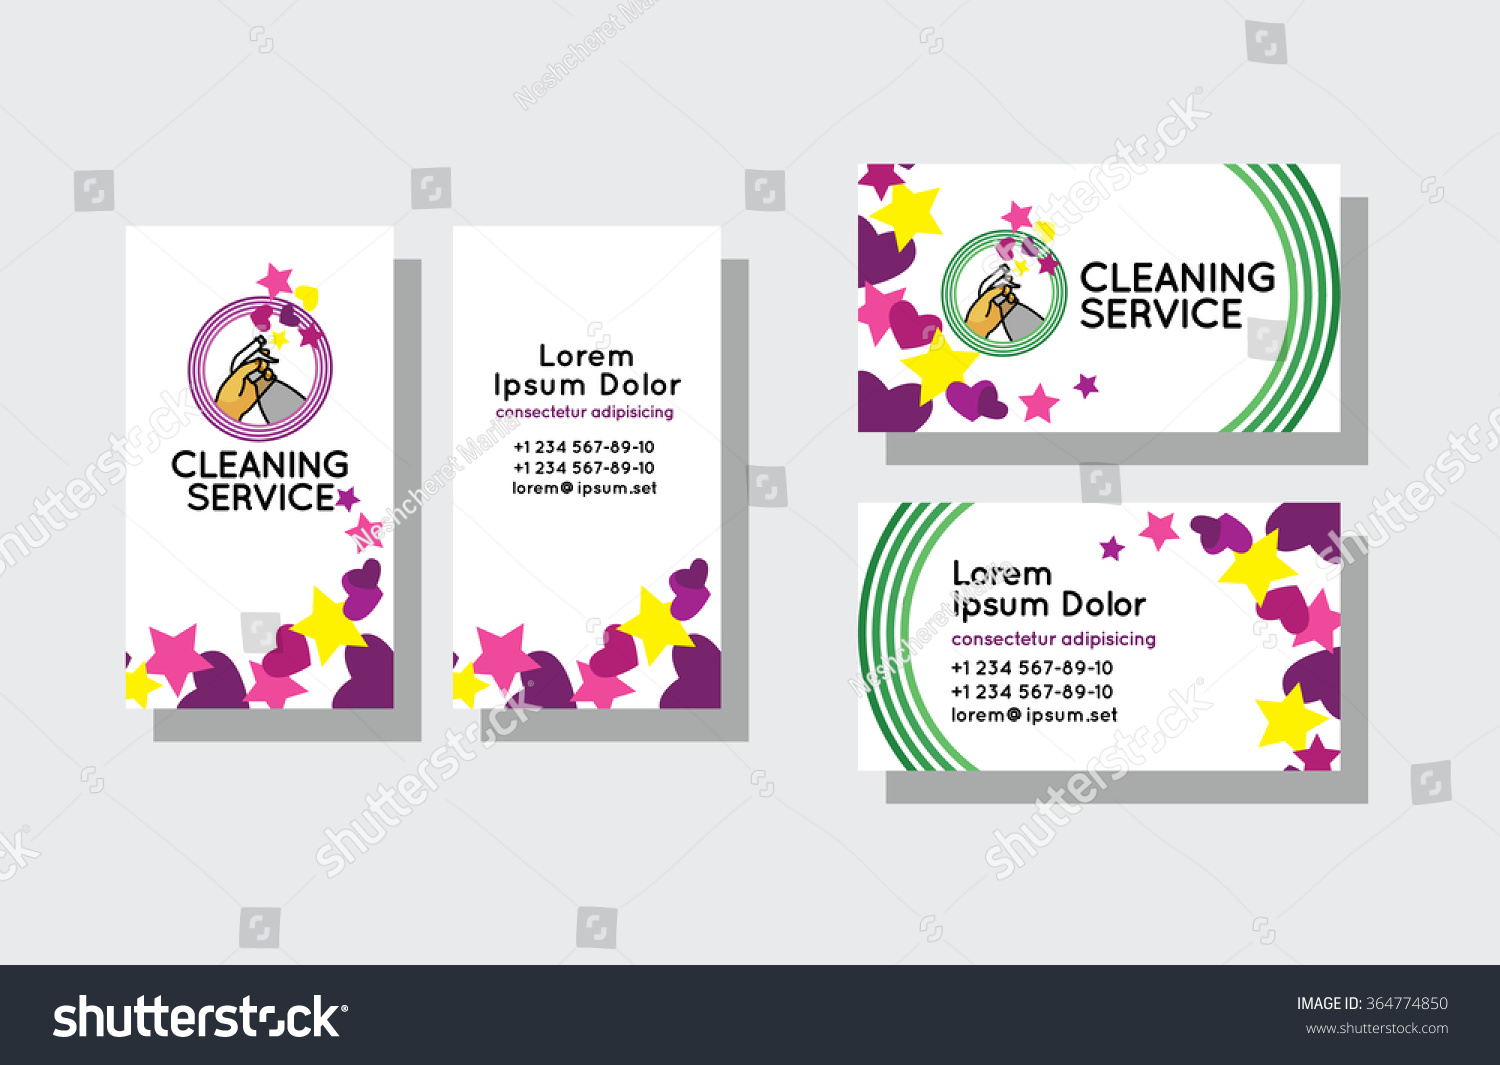 Business cards for cleaning services images free business cards set business cards cleaning service stock vector 364774850 set of business cards for cleaning service magicingreecefo magicingreecefo Gallery